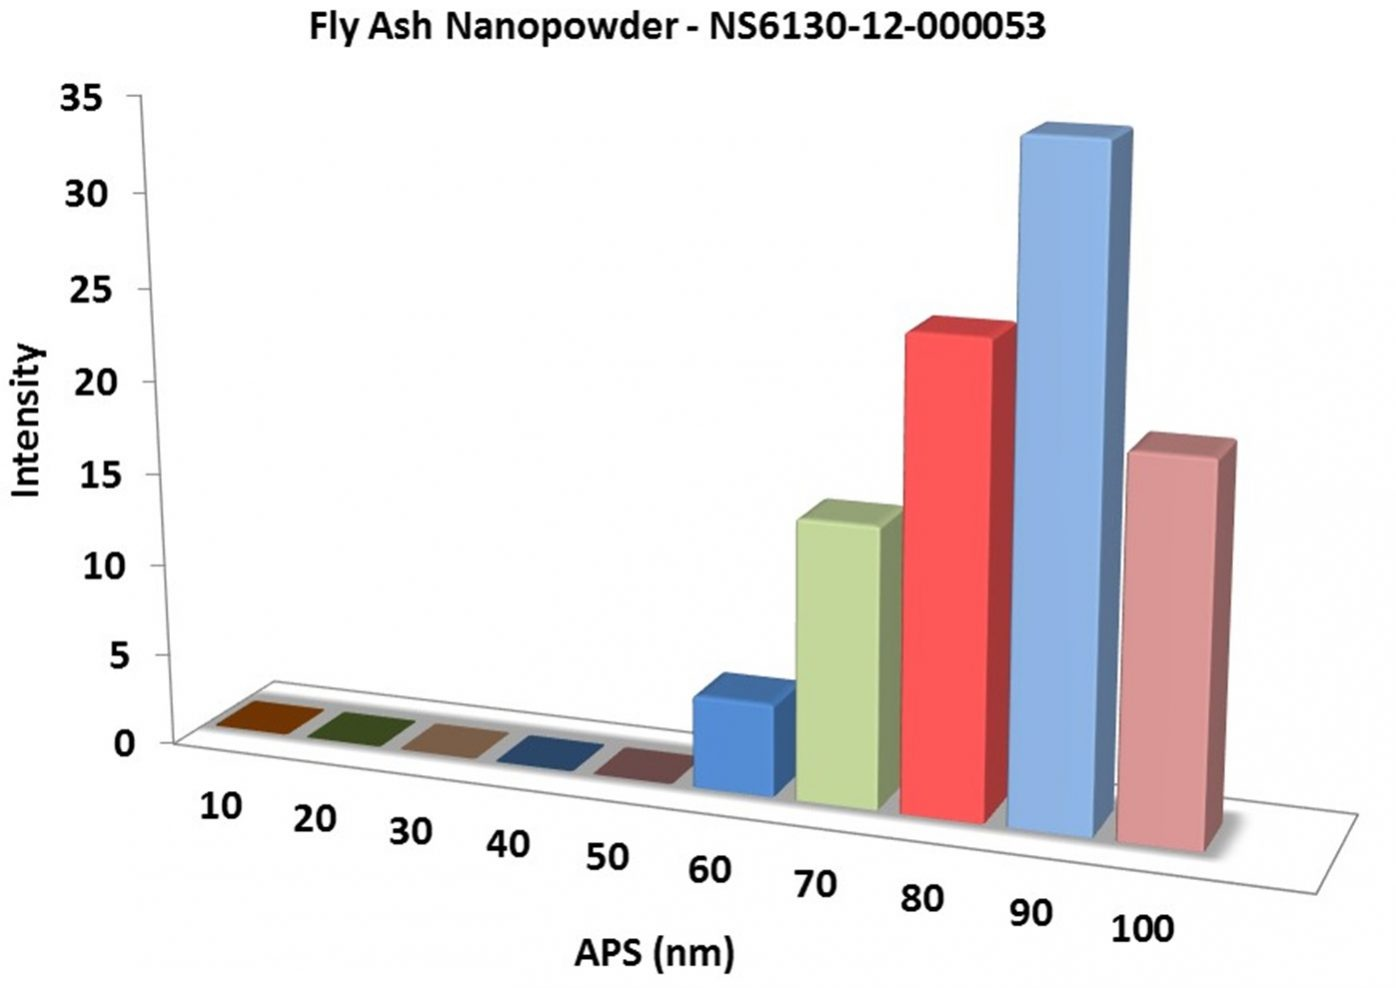 Fly Ash Nanoparticles